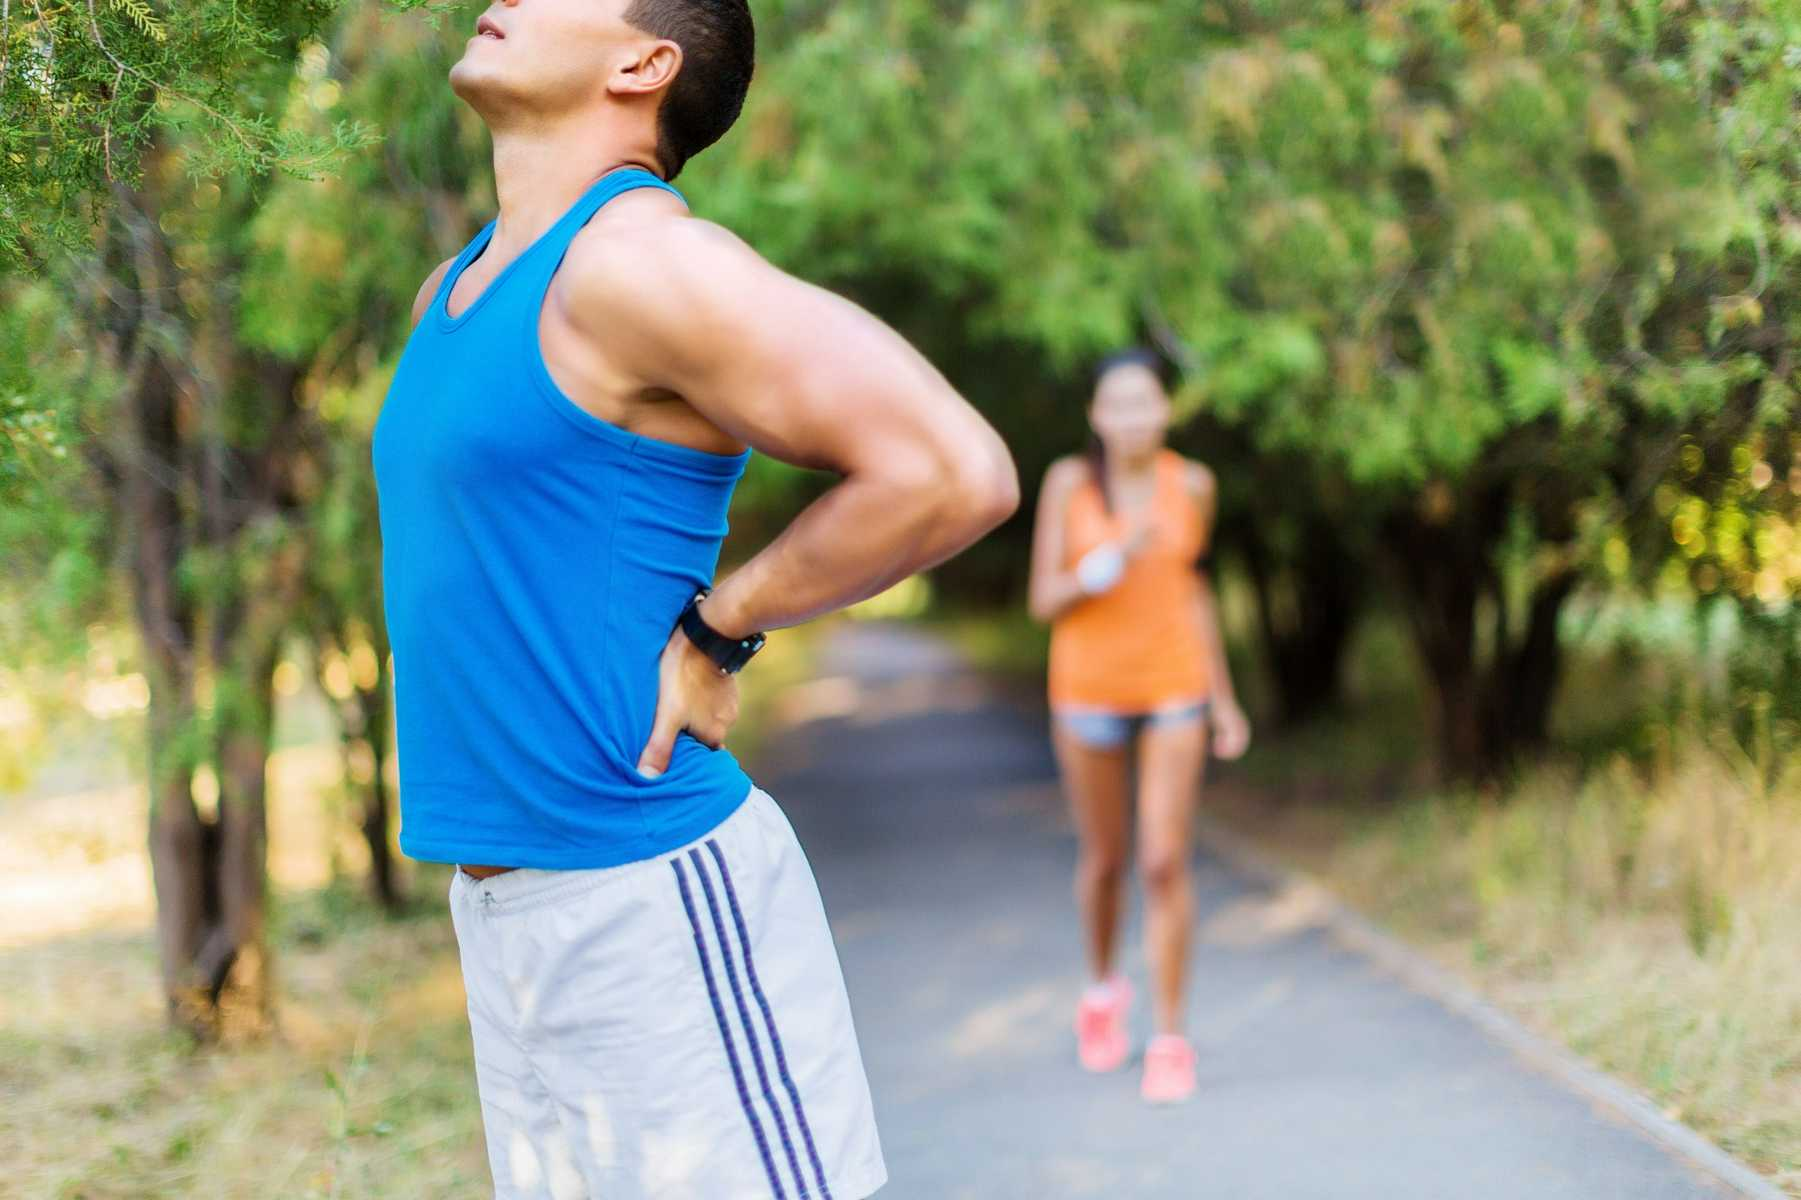 How to Get Fast Relief from Lower Back Spasms